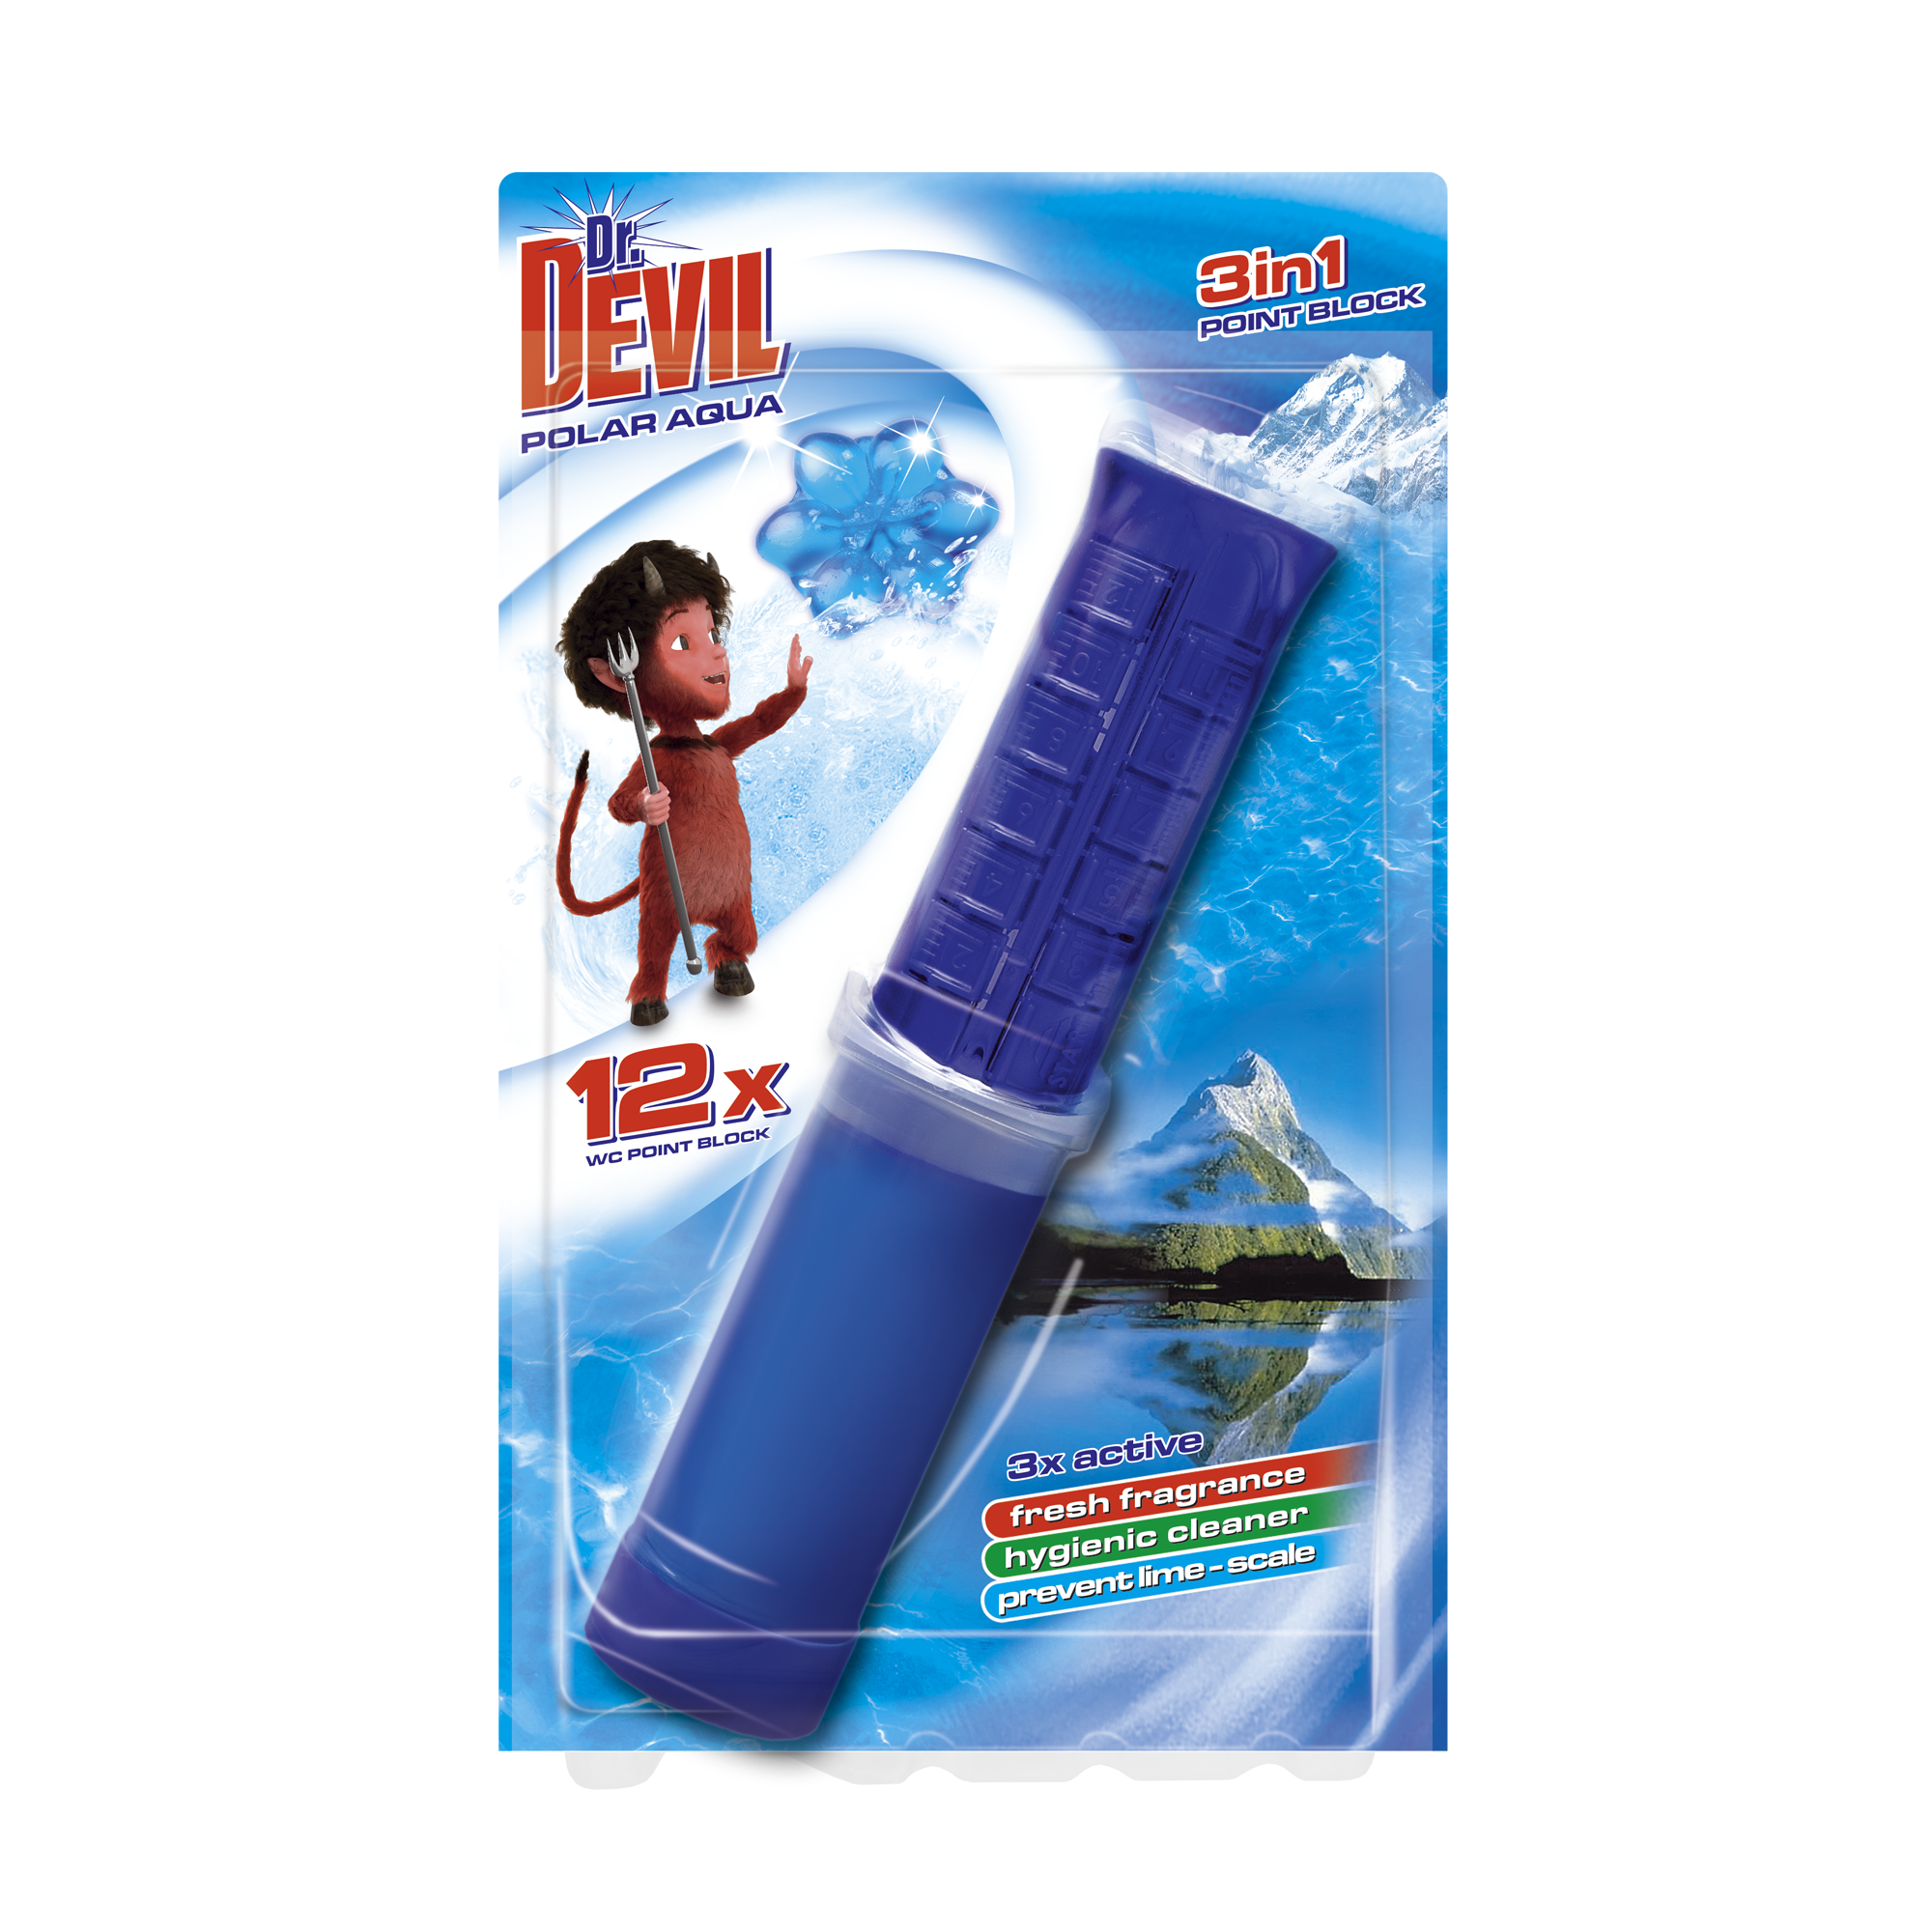 Dr. Devil 3in1 Point block Polar Aqua